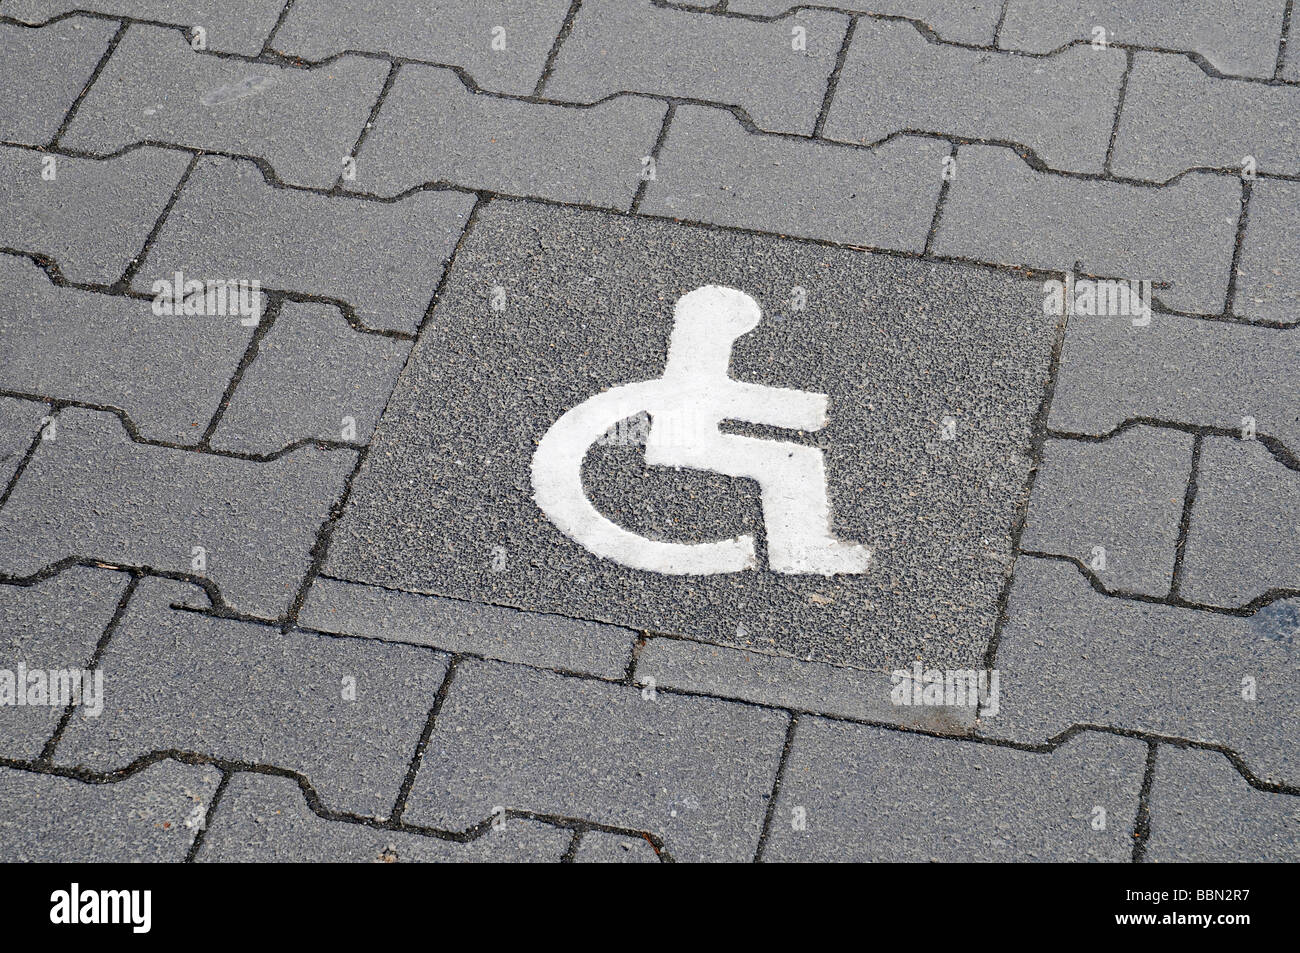 Symbol, wheelchair, disabled parking spot, disabled access, parking lot, Essen, NRW, North Rhine-Westphalia, Germany, - Stock Image